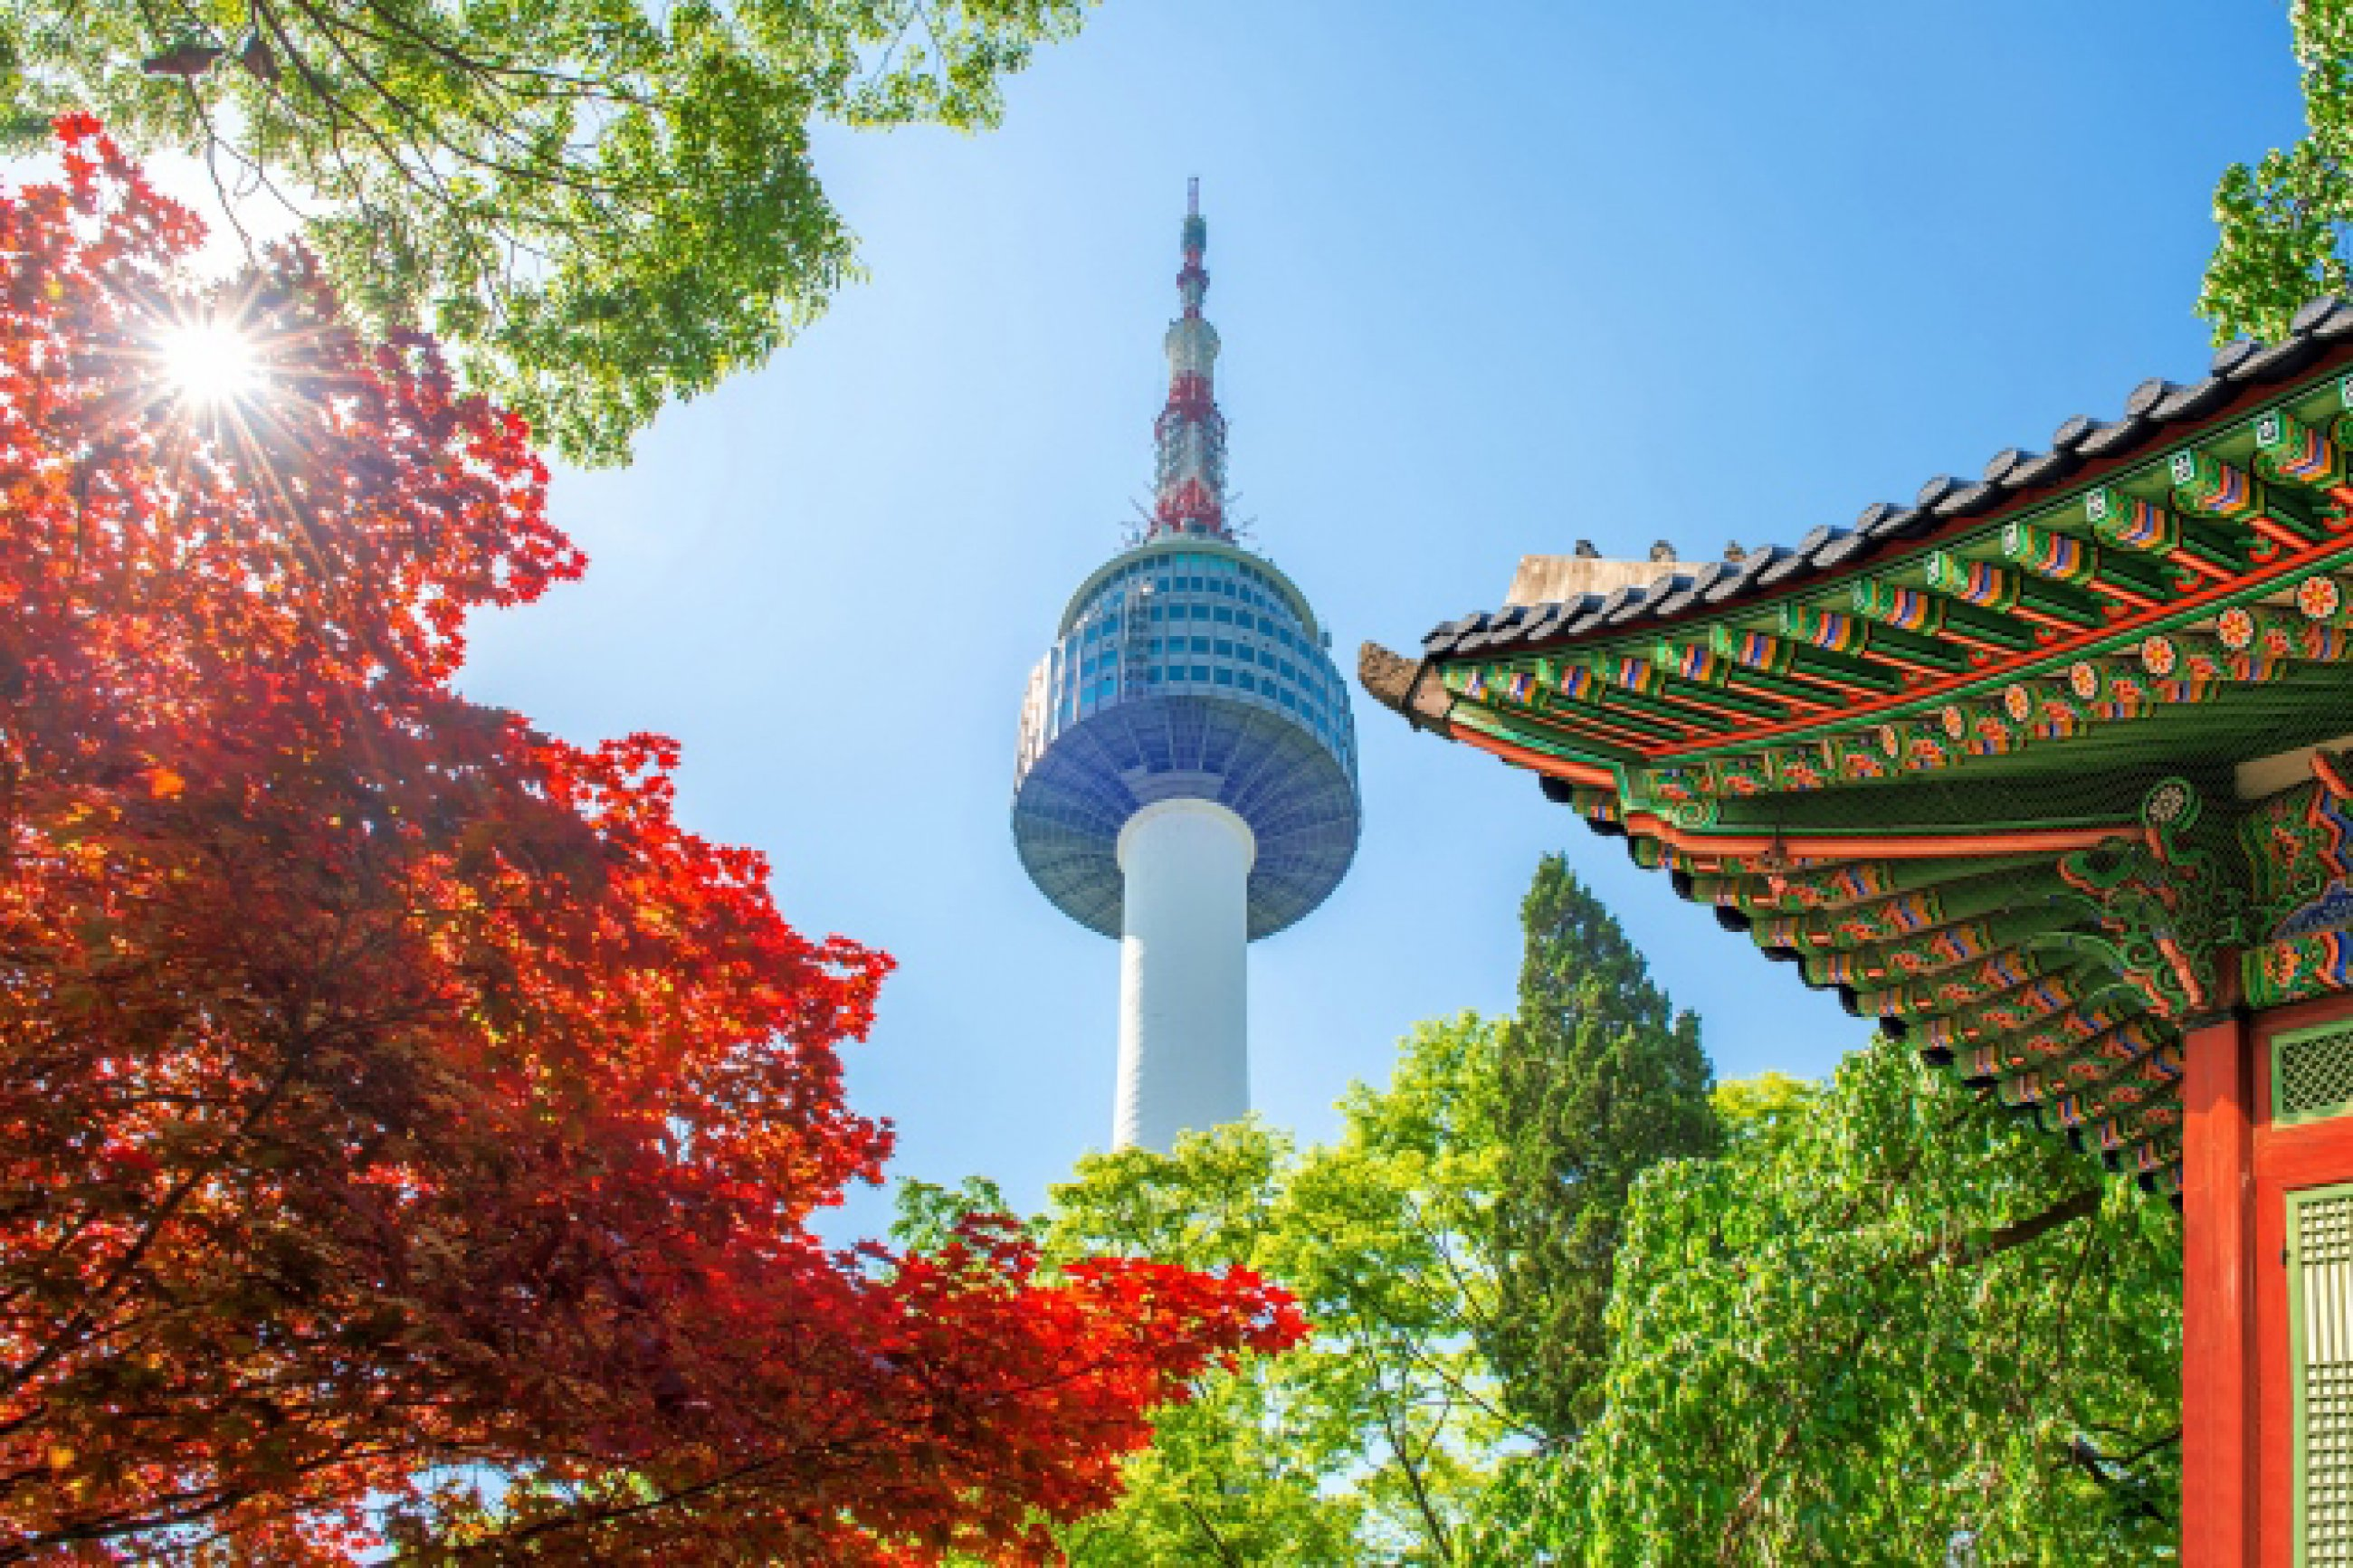 https://bubo.sk/uploads/galleries/7452/seoul-tower-with-gyeongbokgung-roof-and-red-autumn-maple-leaves-at-namsan-mountain-in-south-korea.jpg